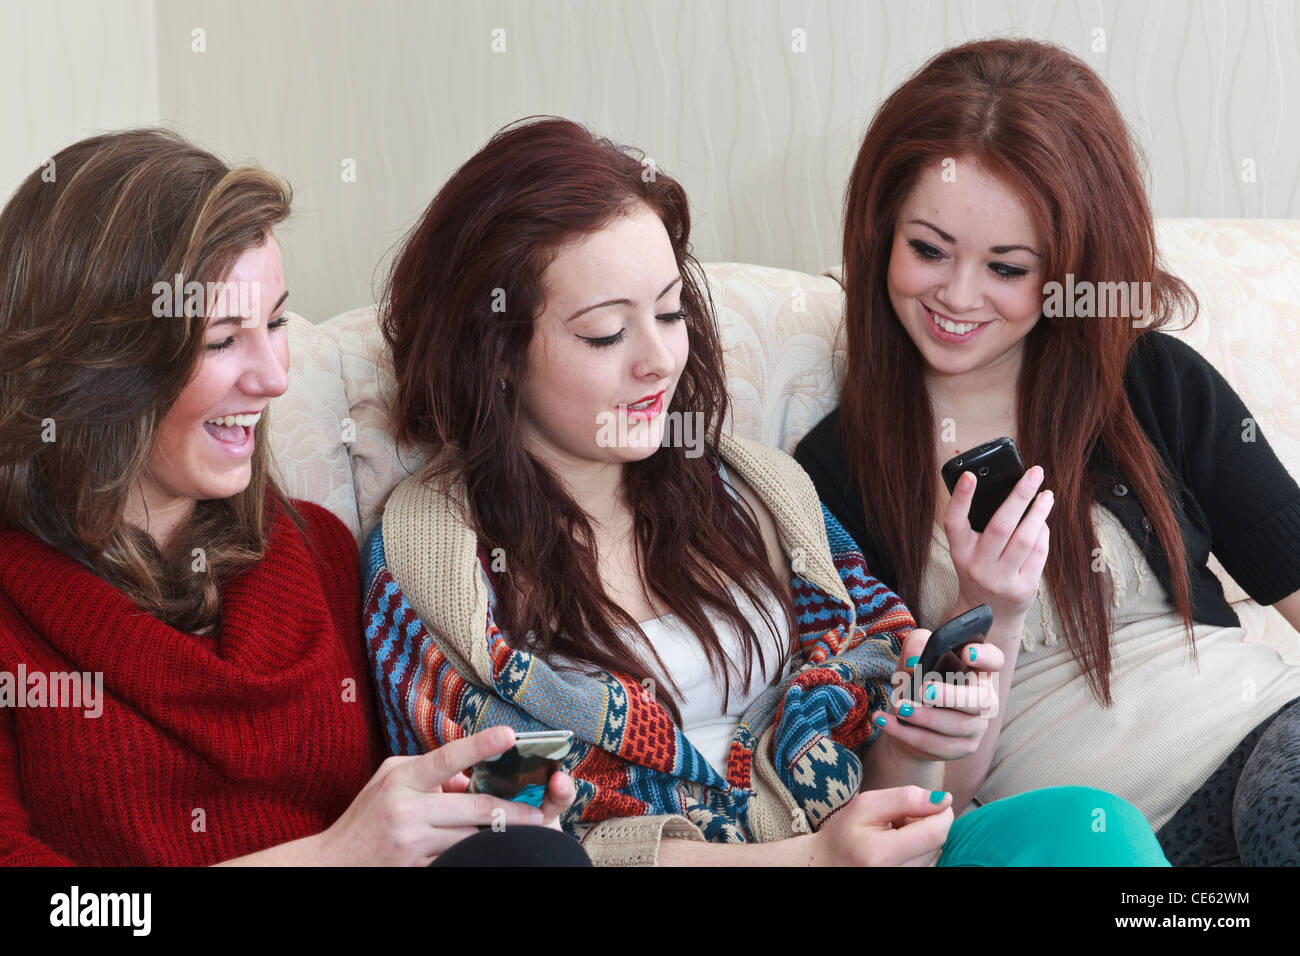 Three generation z teenage girl friends aged 15 years having a laugh looking at photos on a mobile phone whilst - Stock Image